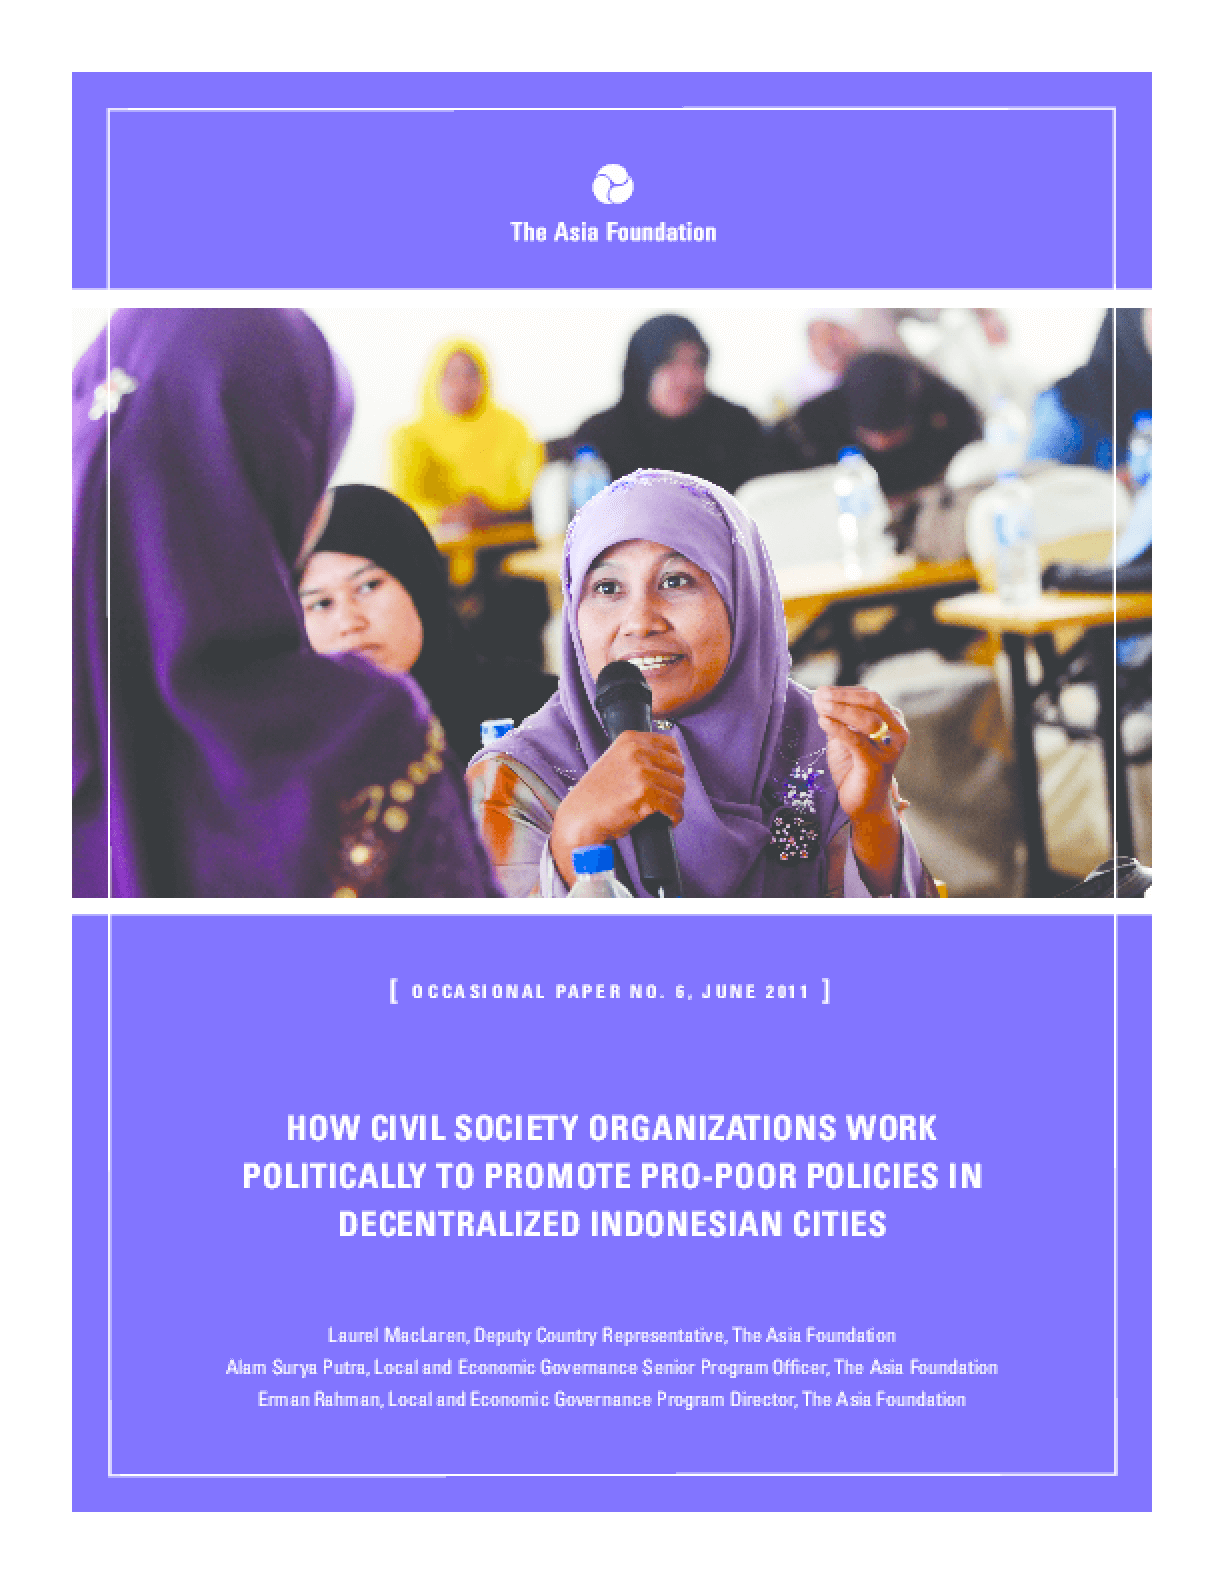 How Civil Society Organizations Works Politically to Promote Pro-Poor Policies in Decentralized Indonesian Cities